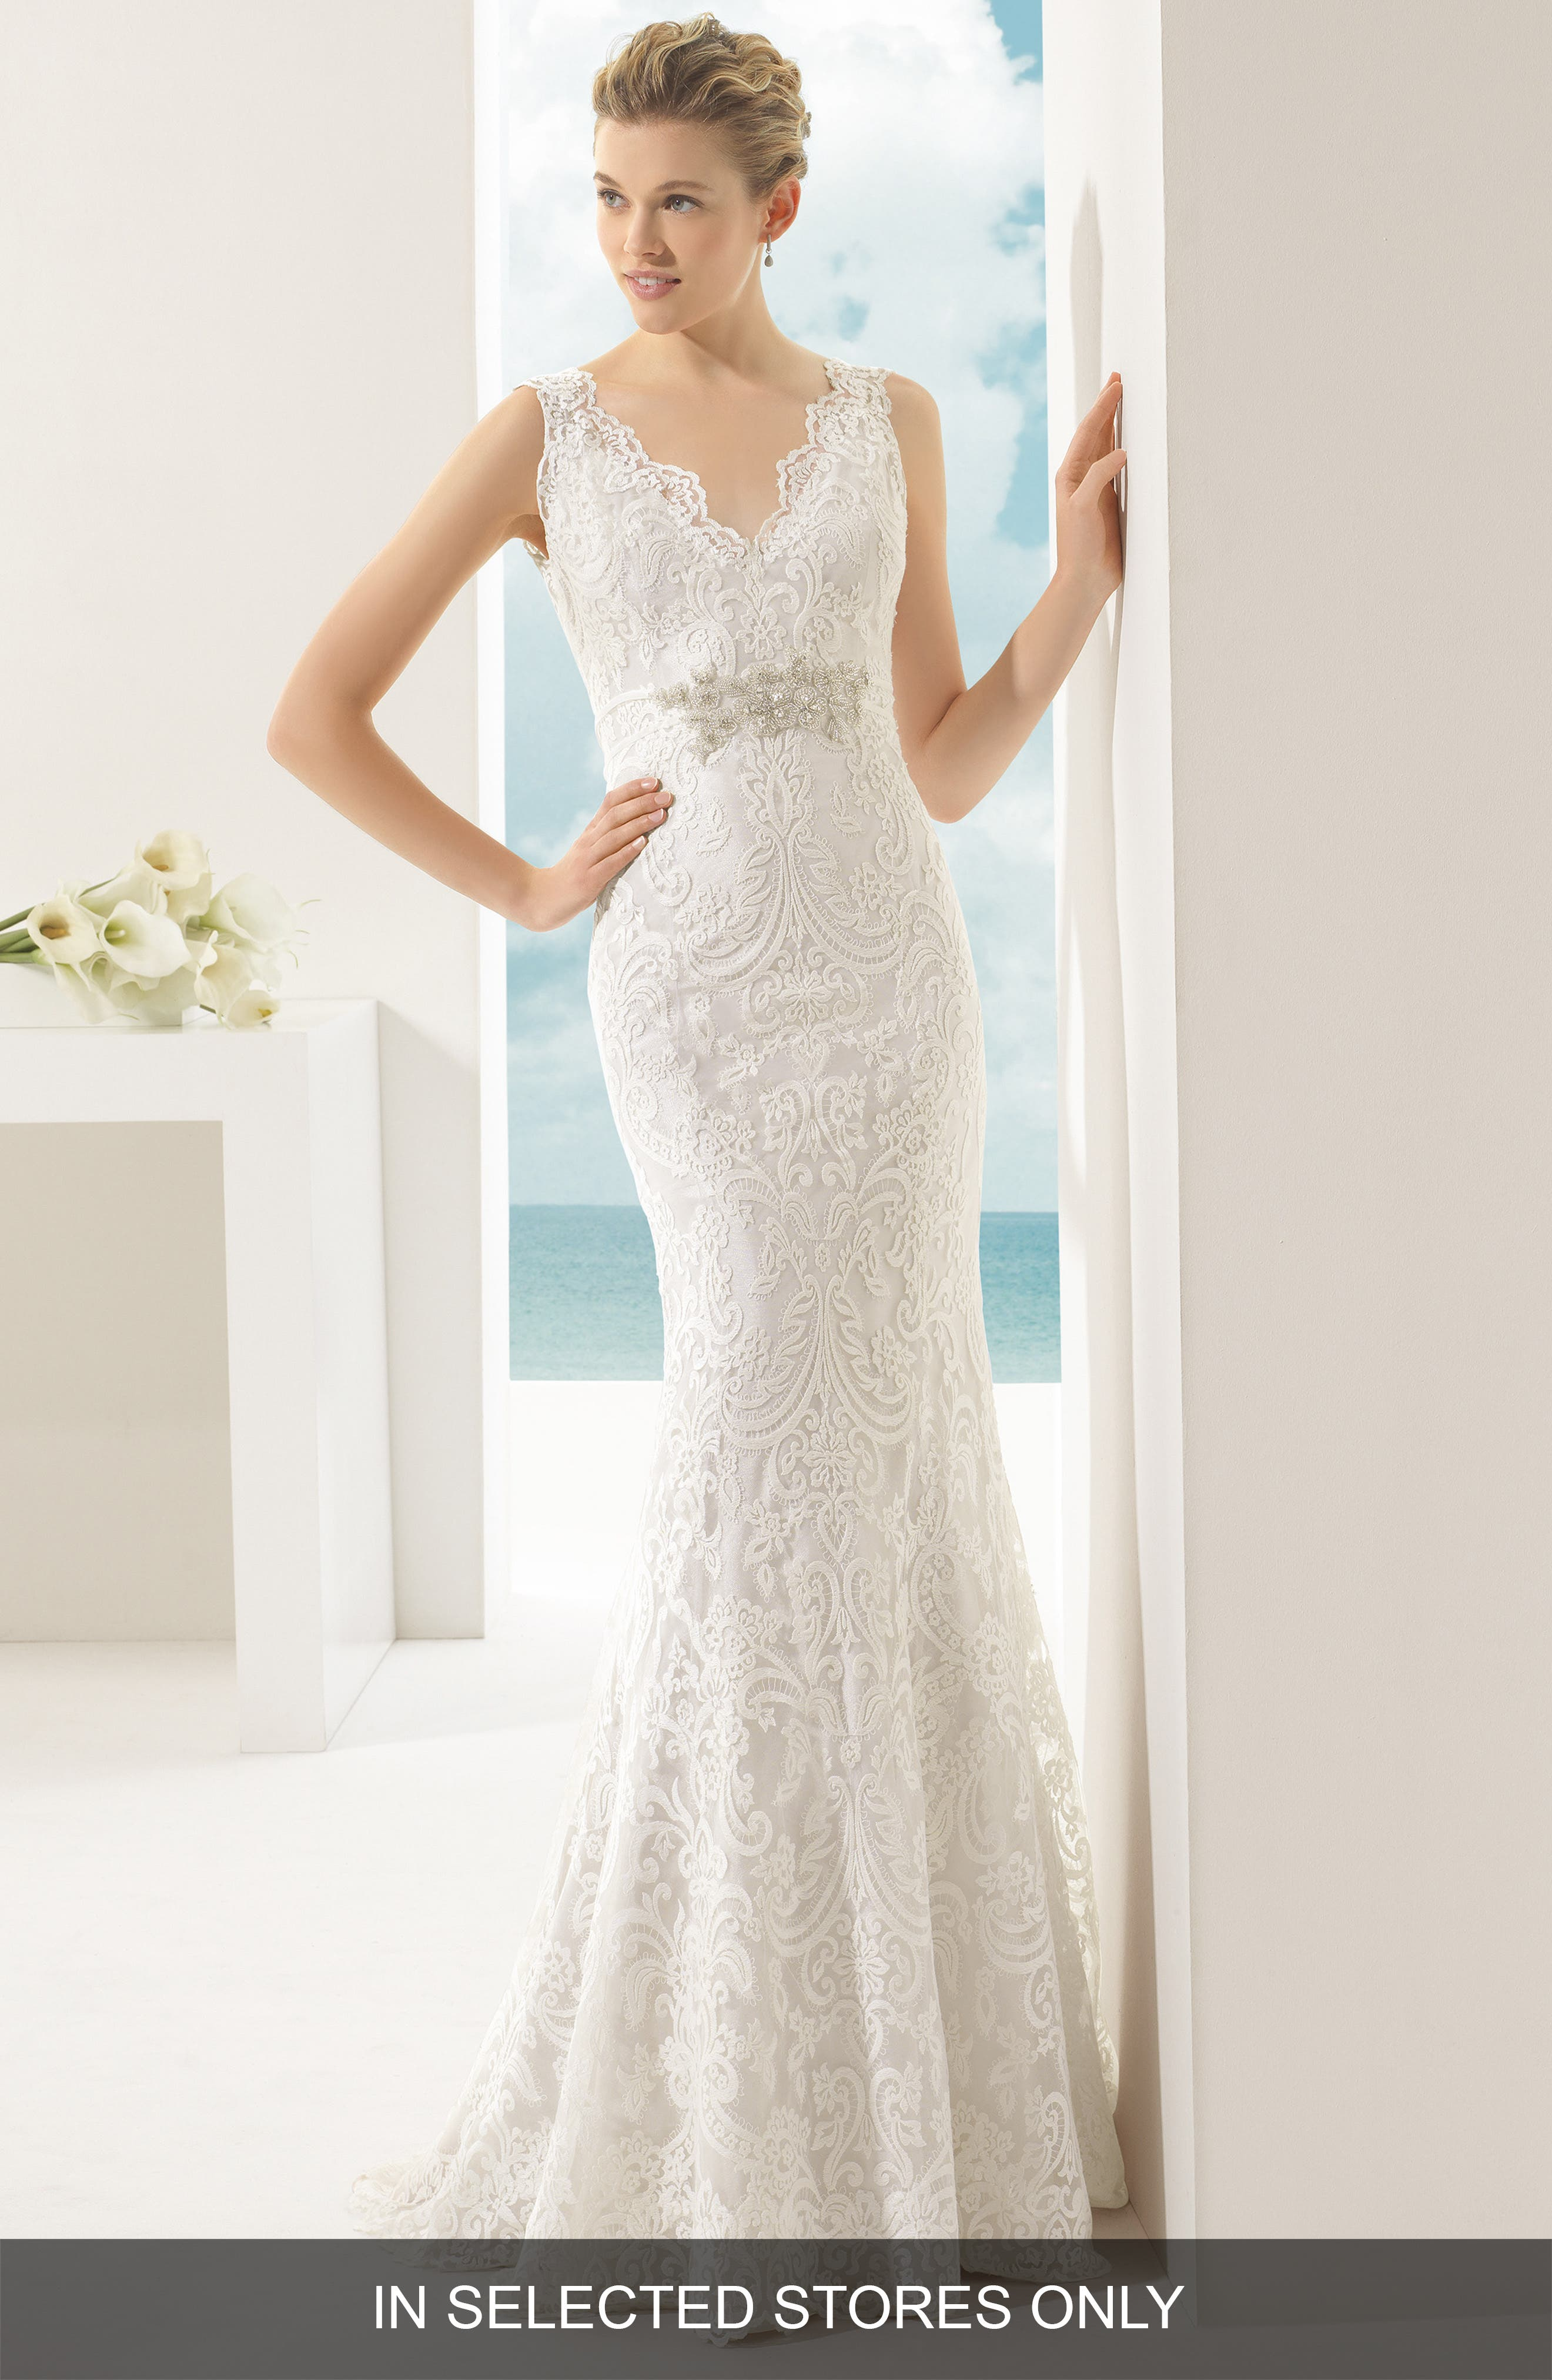 Vigo Beaded V-Neck Lace Overlay Mermaid Dress,                         Main,                         color, Ivory